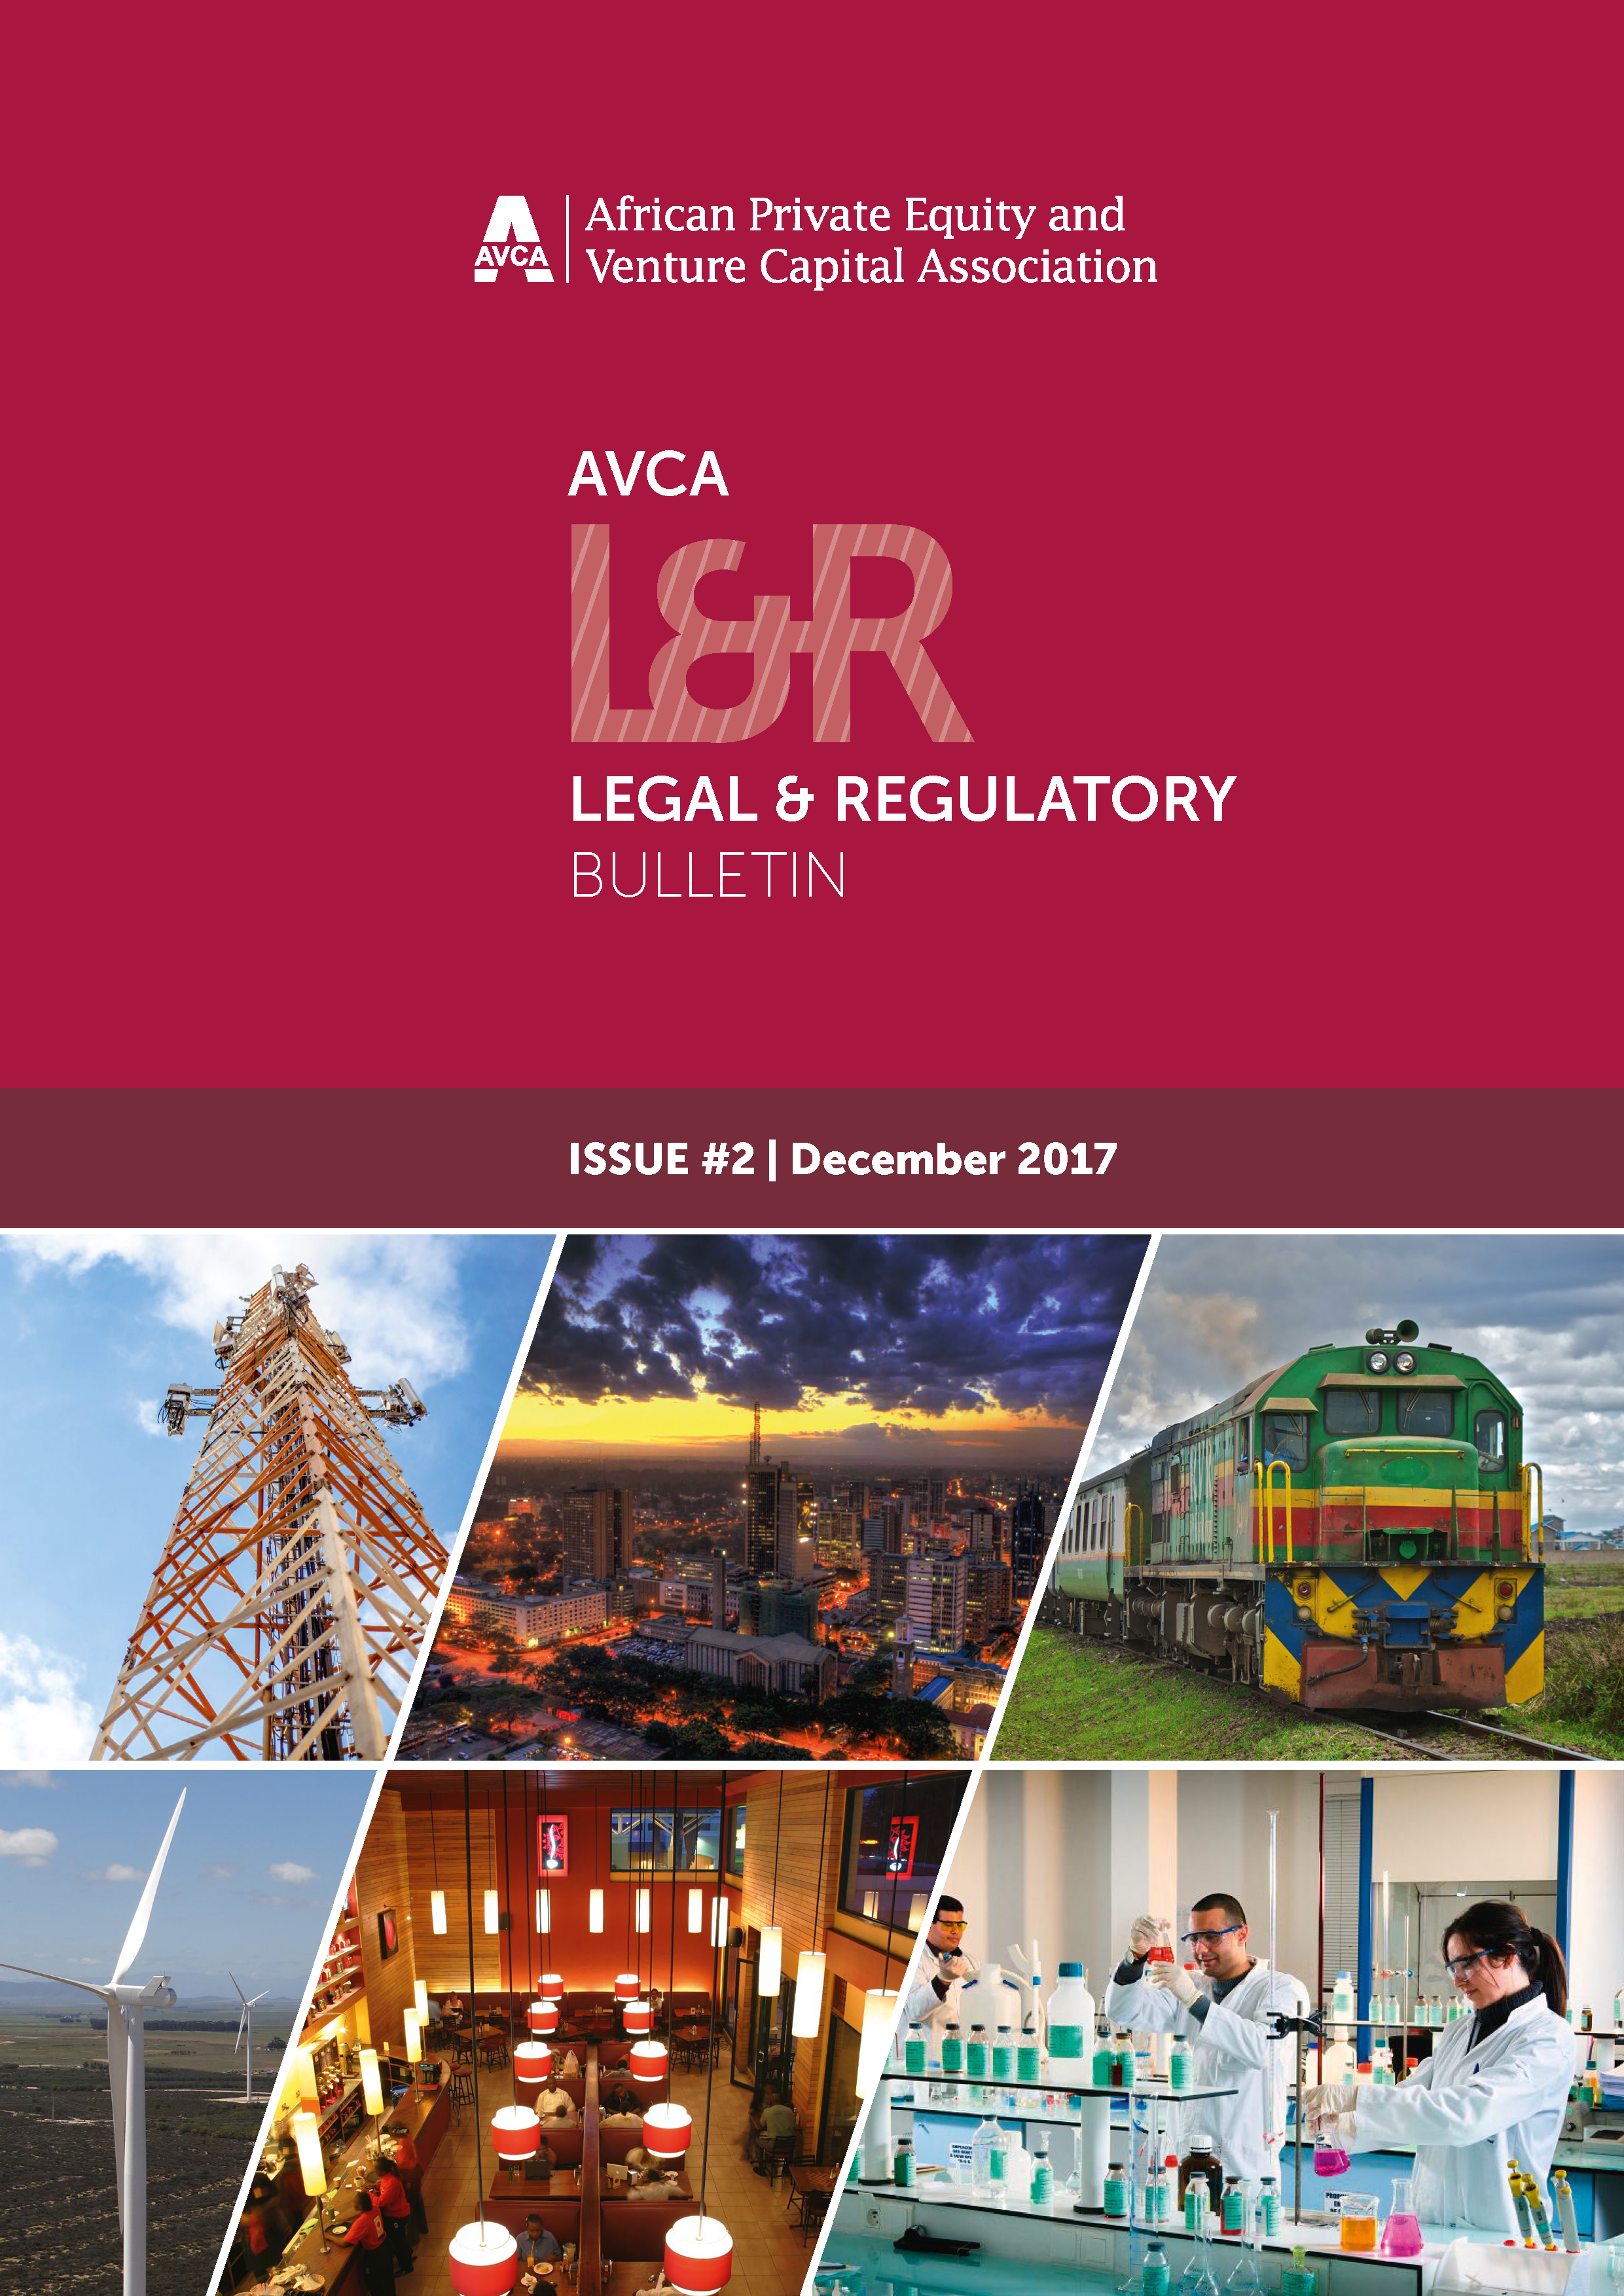 AVCA Legal & Regulatory Bulletin